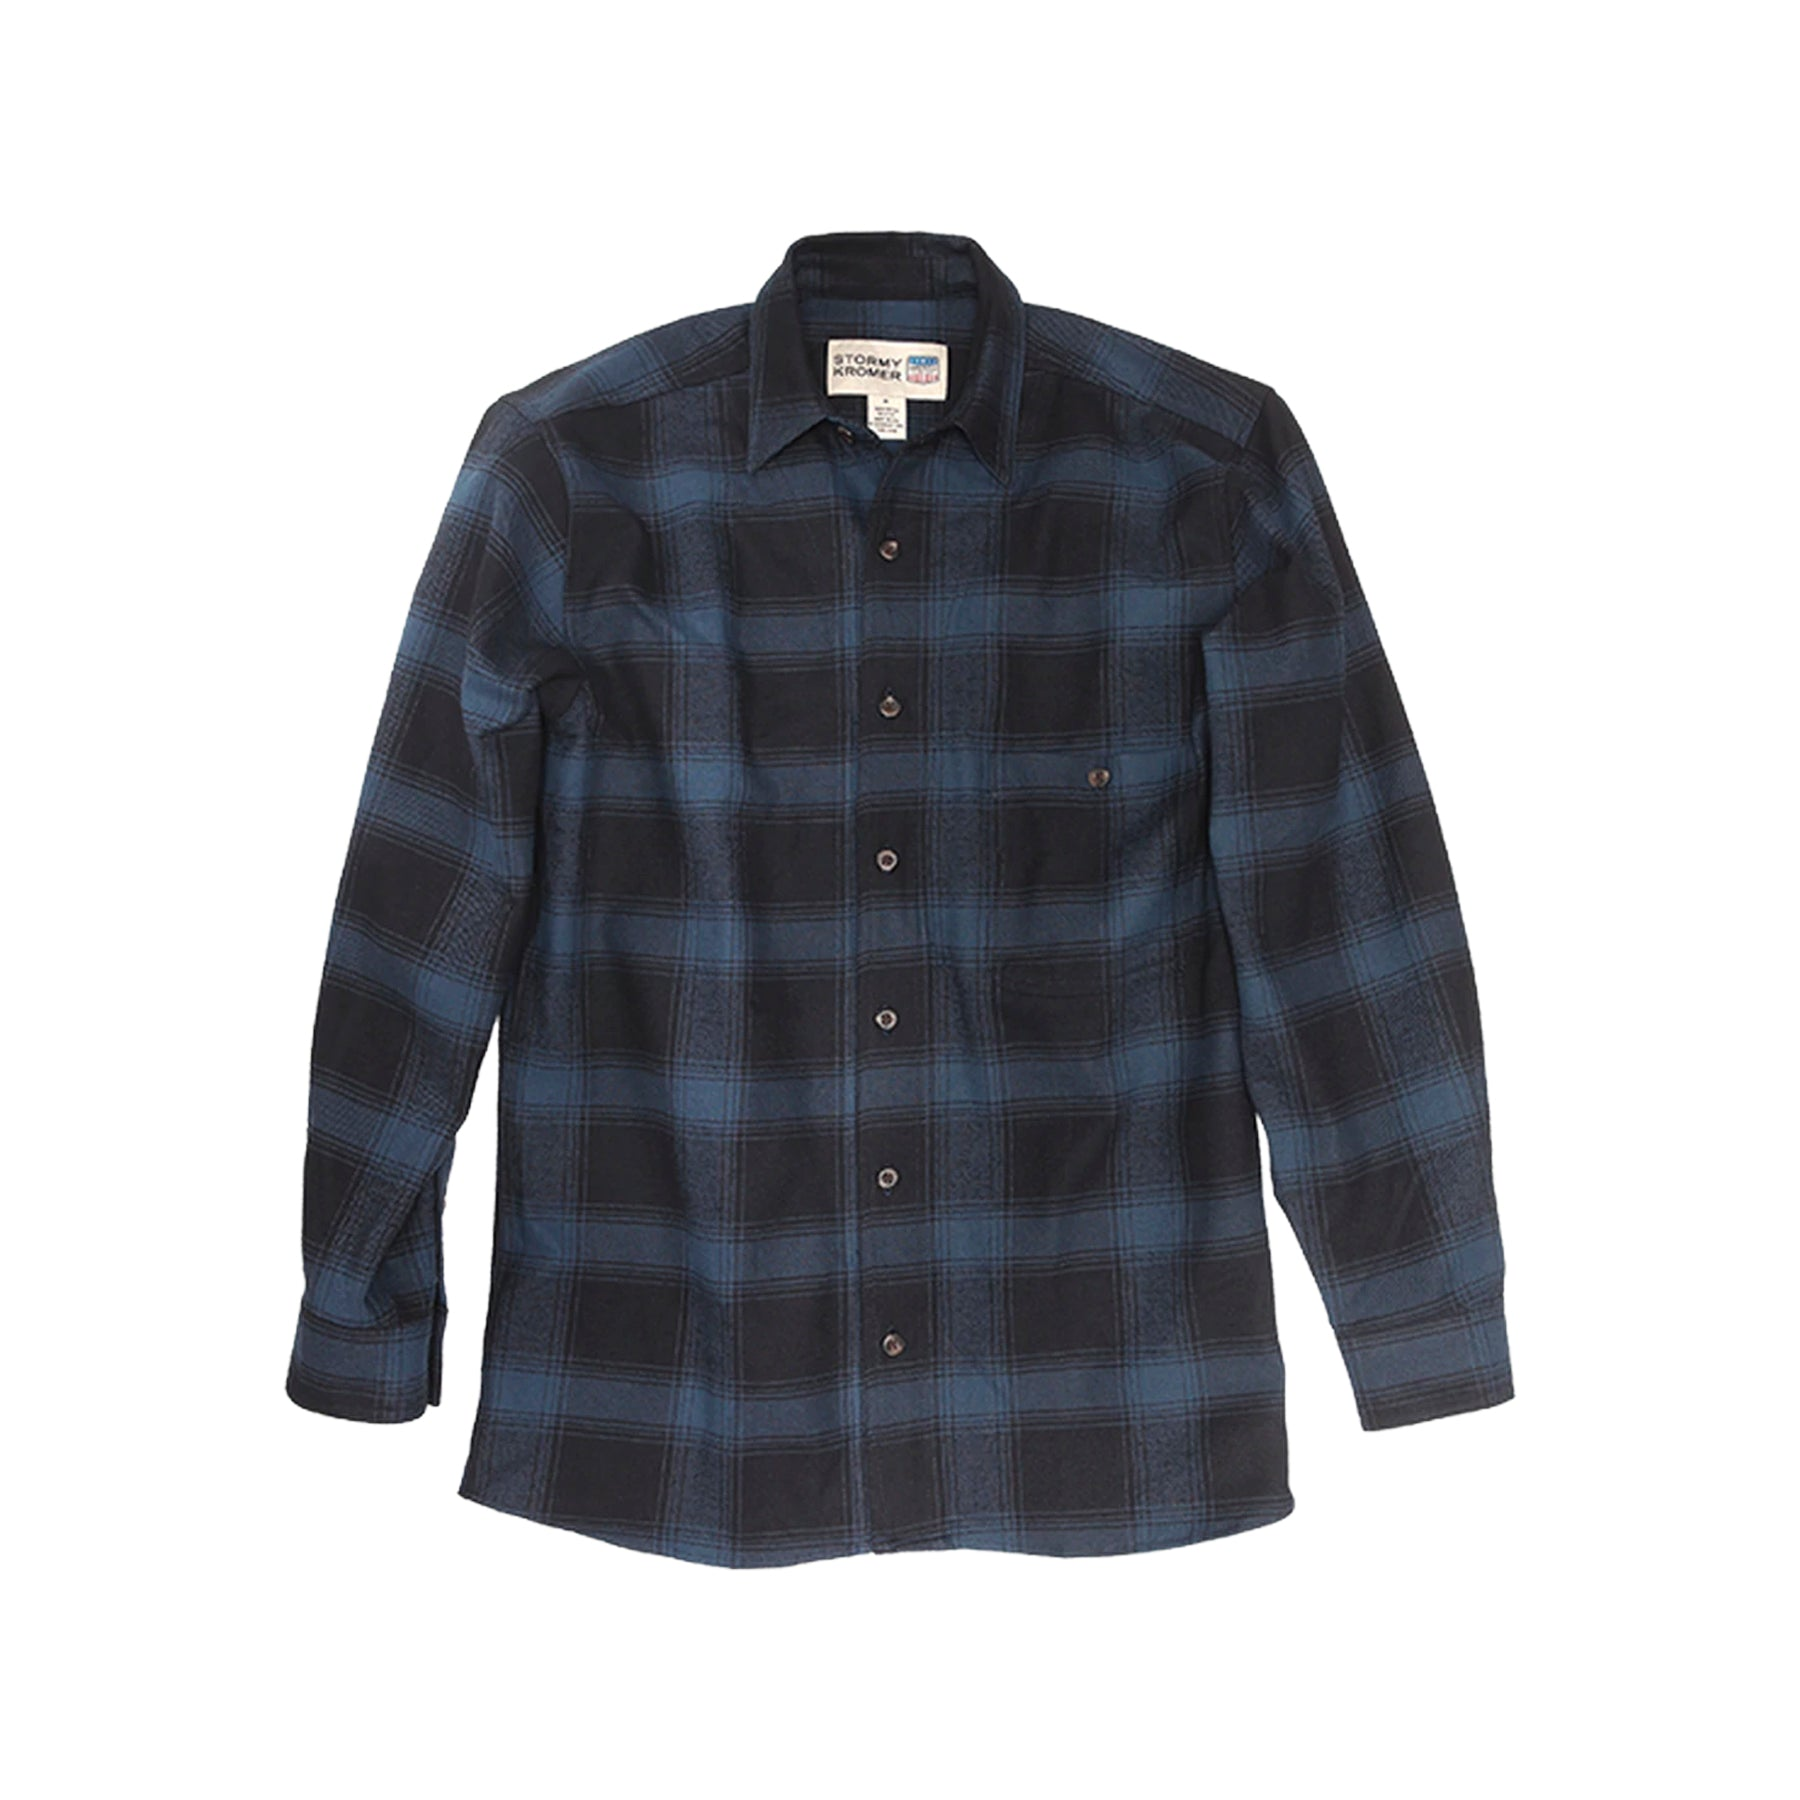 Stormy Kromer Flannel Shirt - Black & Indigo Plaid